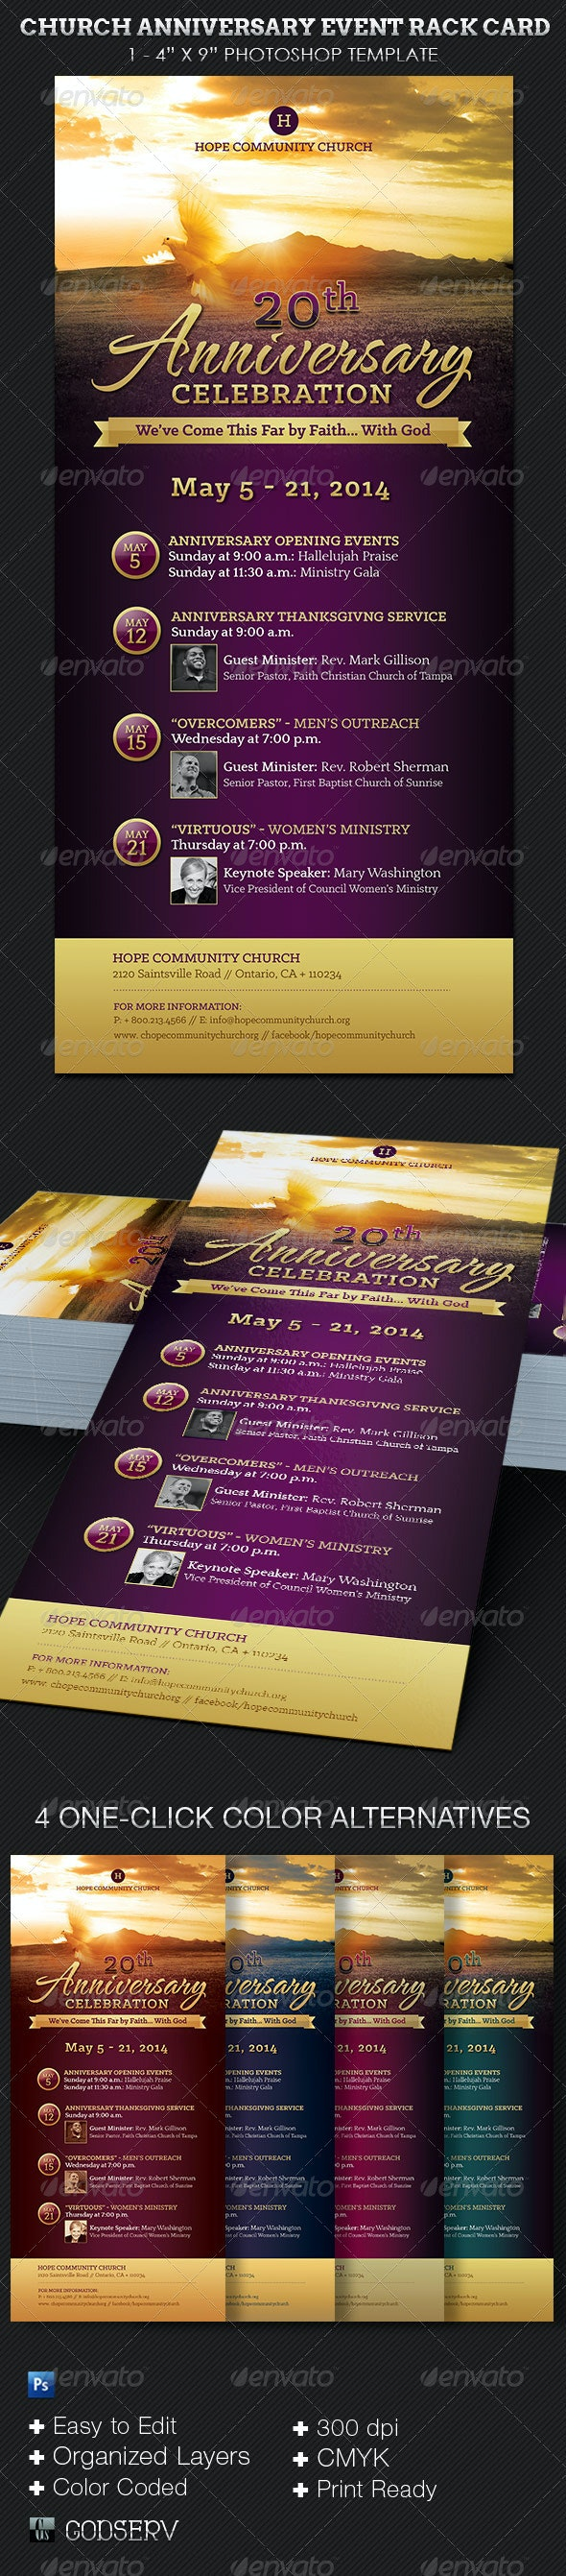 Church Anniversary Events Rack Card Template - Church Flyers